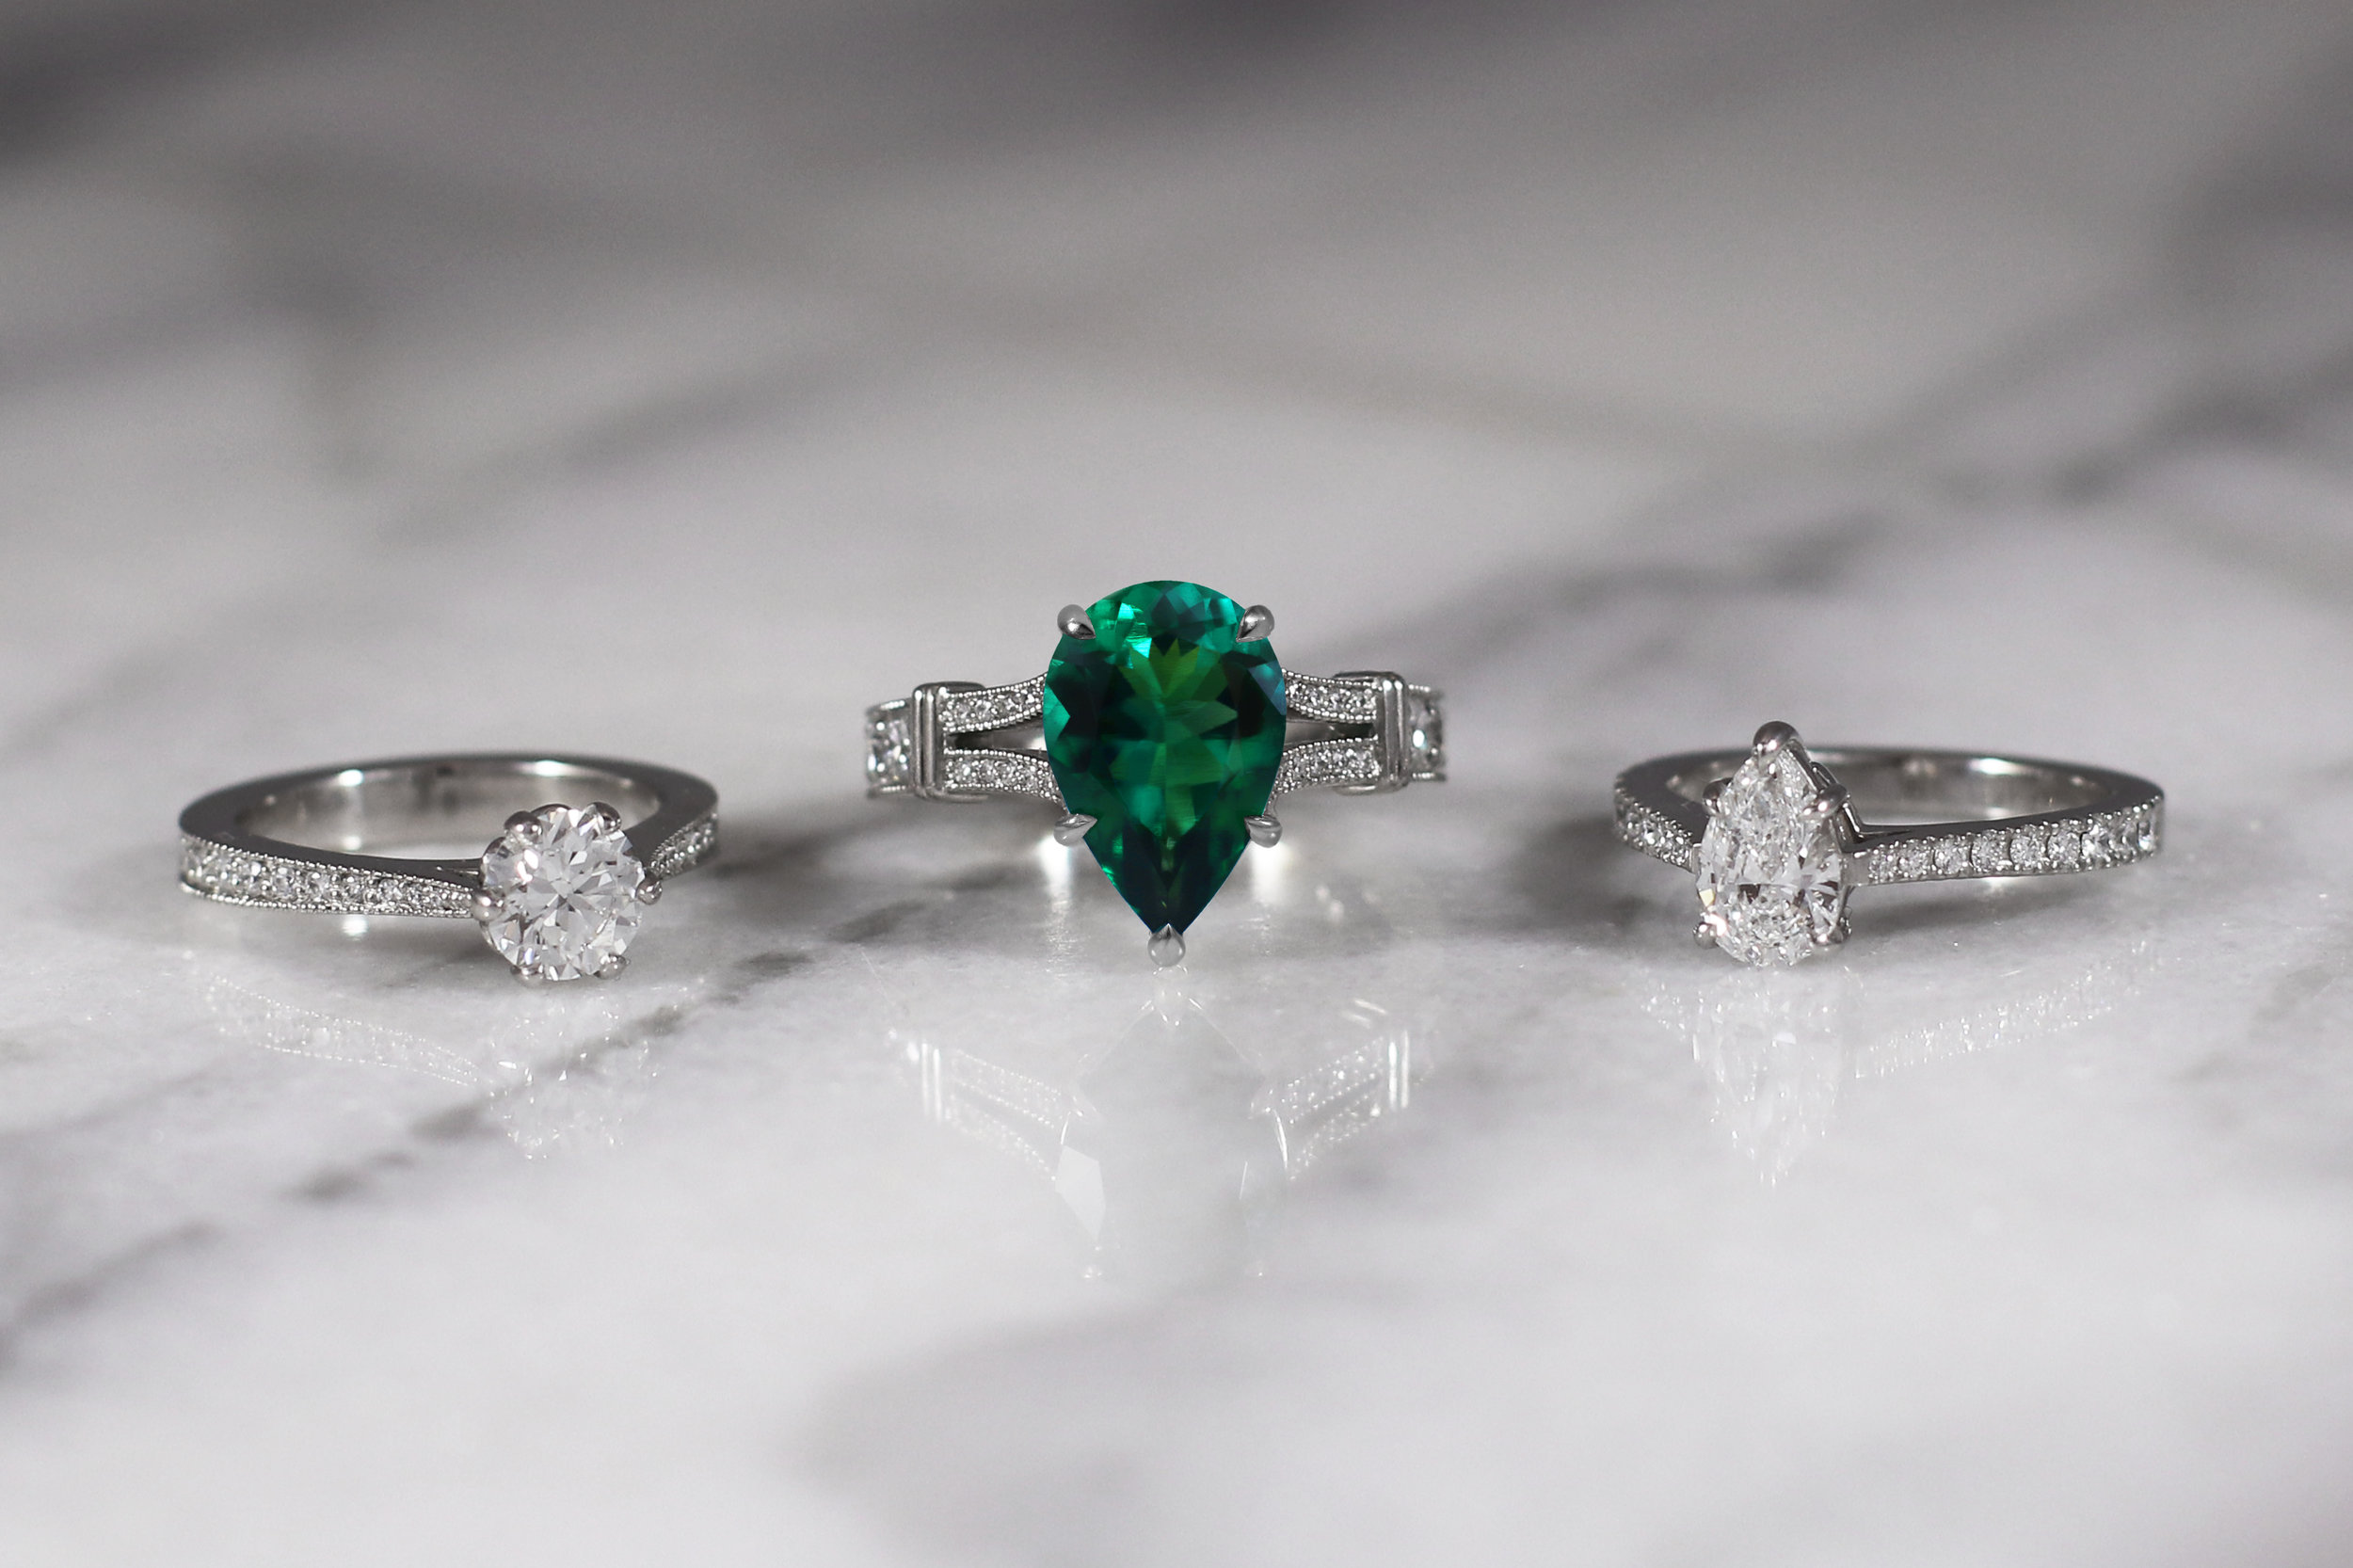 Elisa Melegari Jewelry Engagement Rings